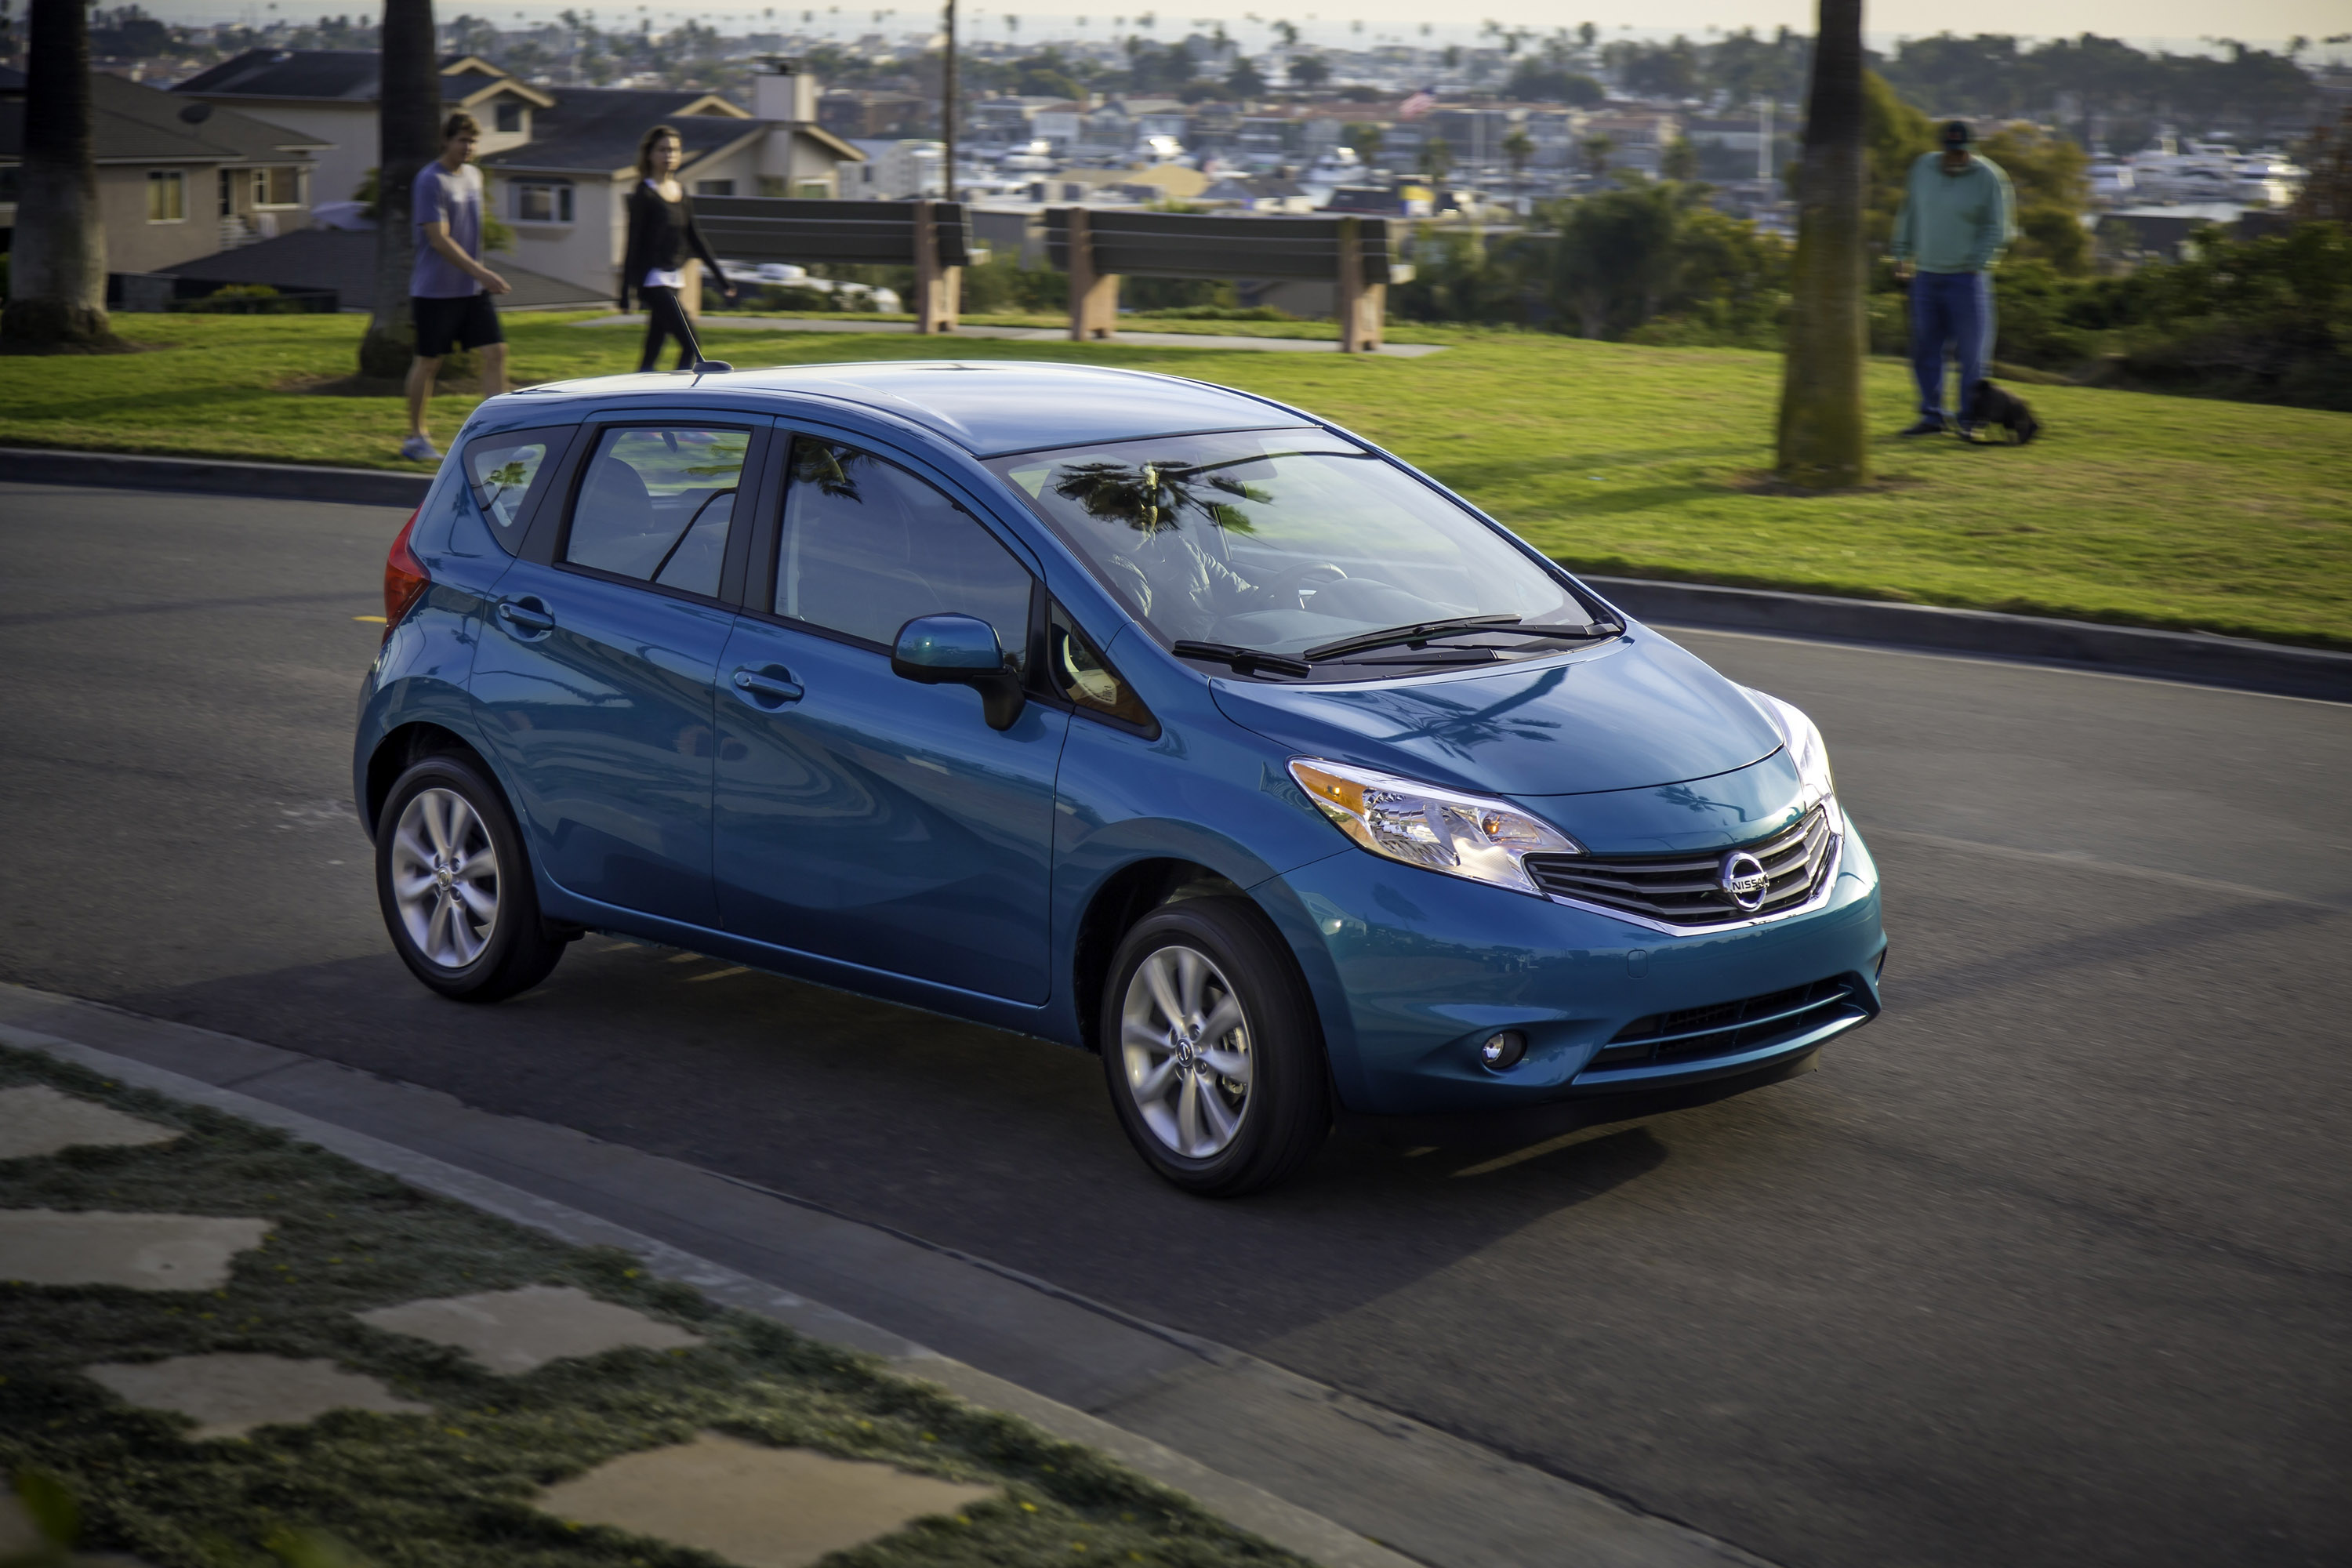 h note report gas news versa nissan mileage drive